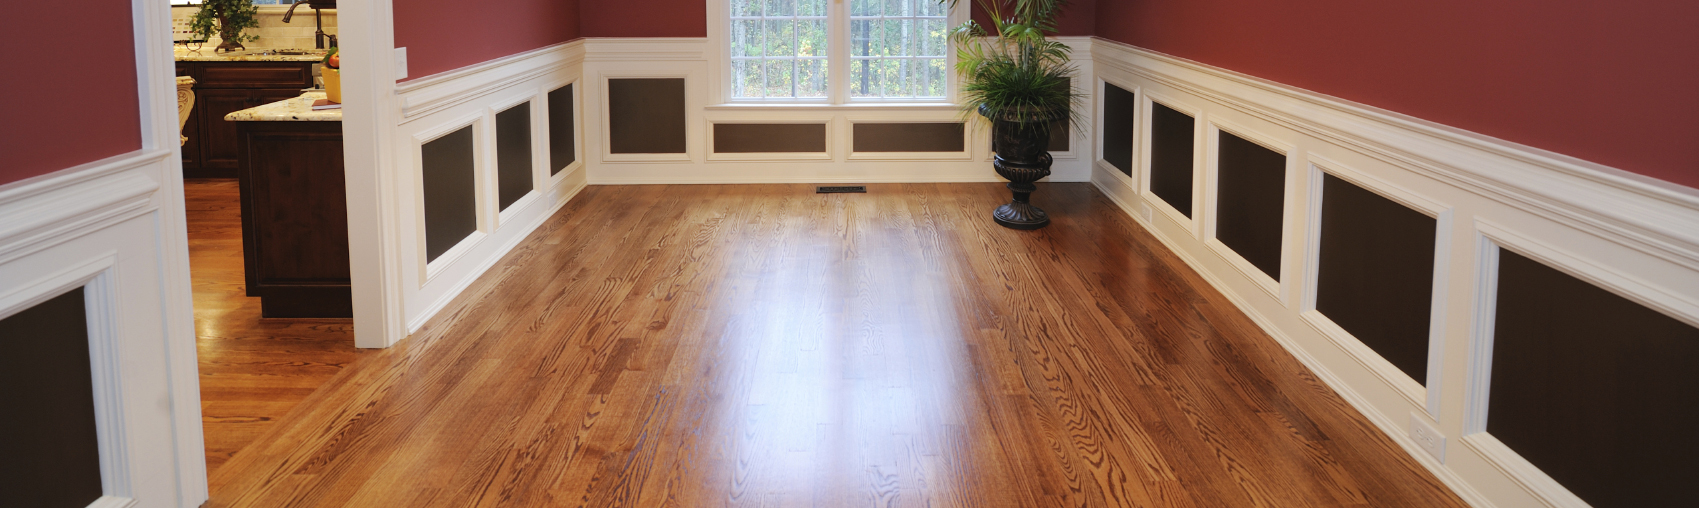 Hardwood Floor Refinishing Services In Marietta Ga